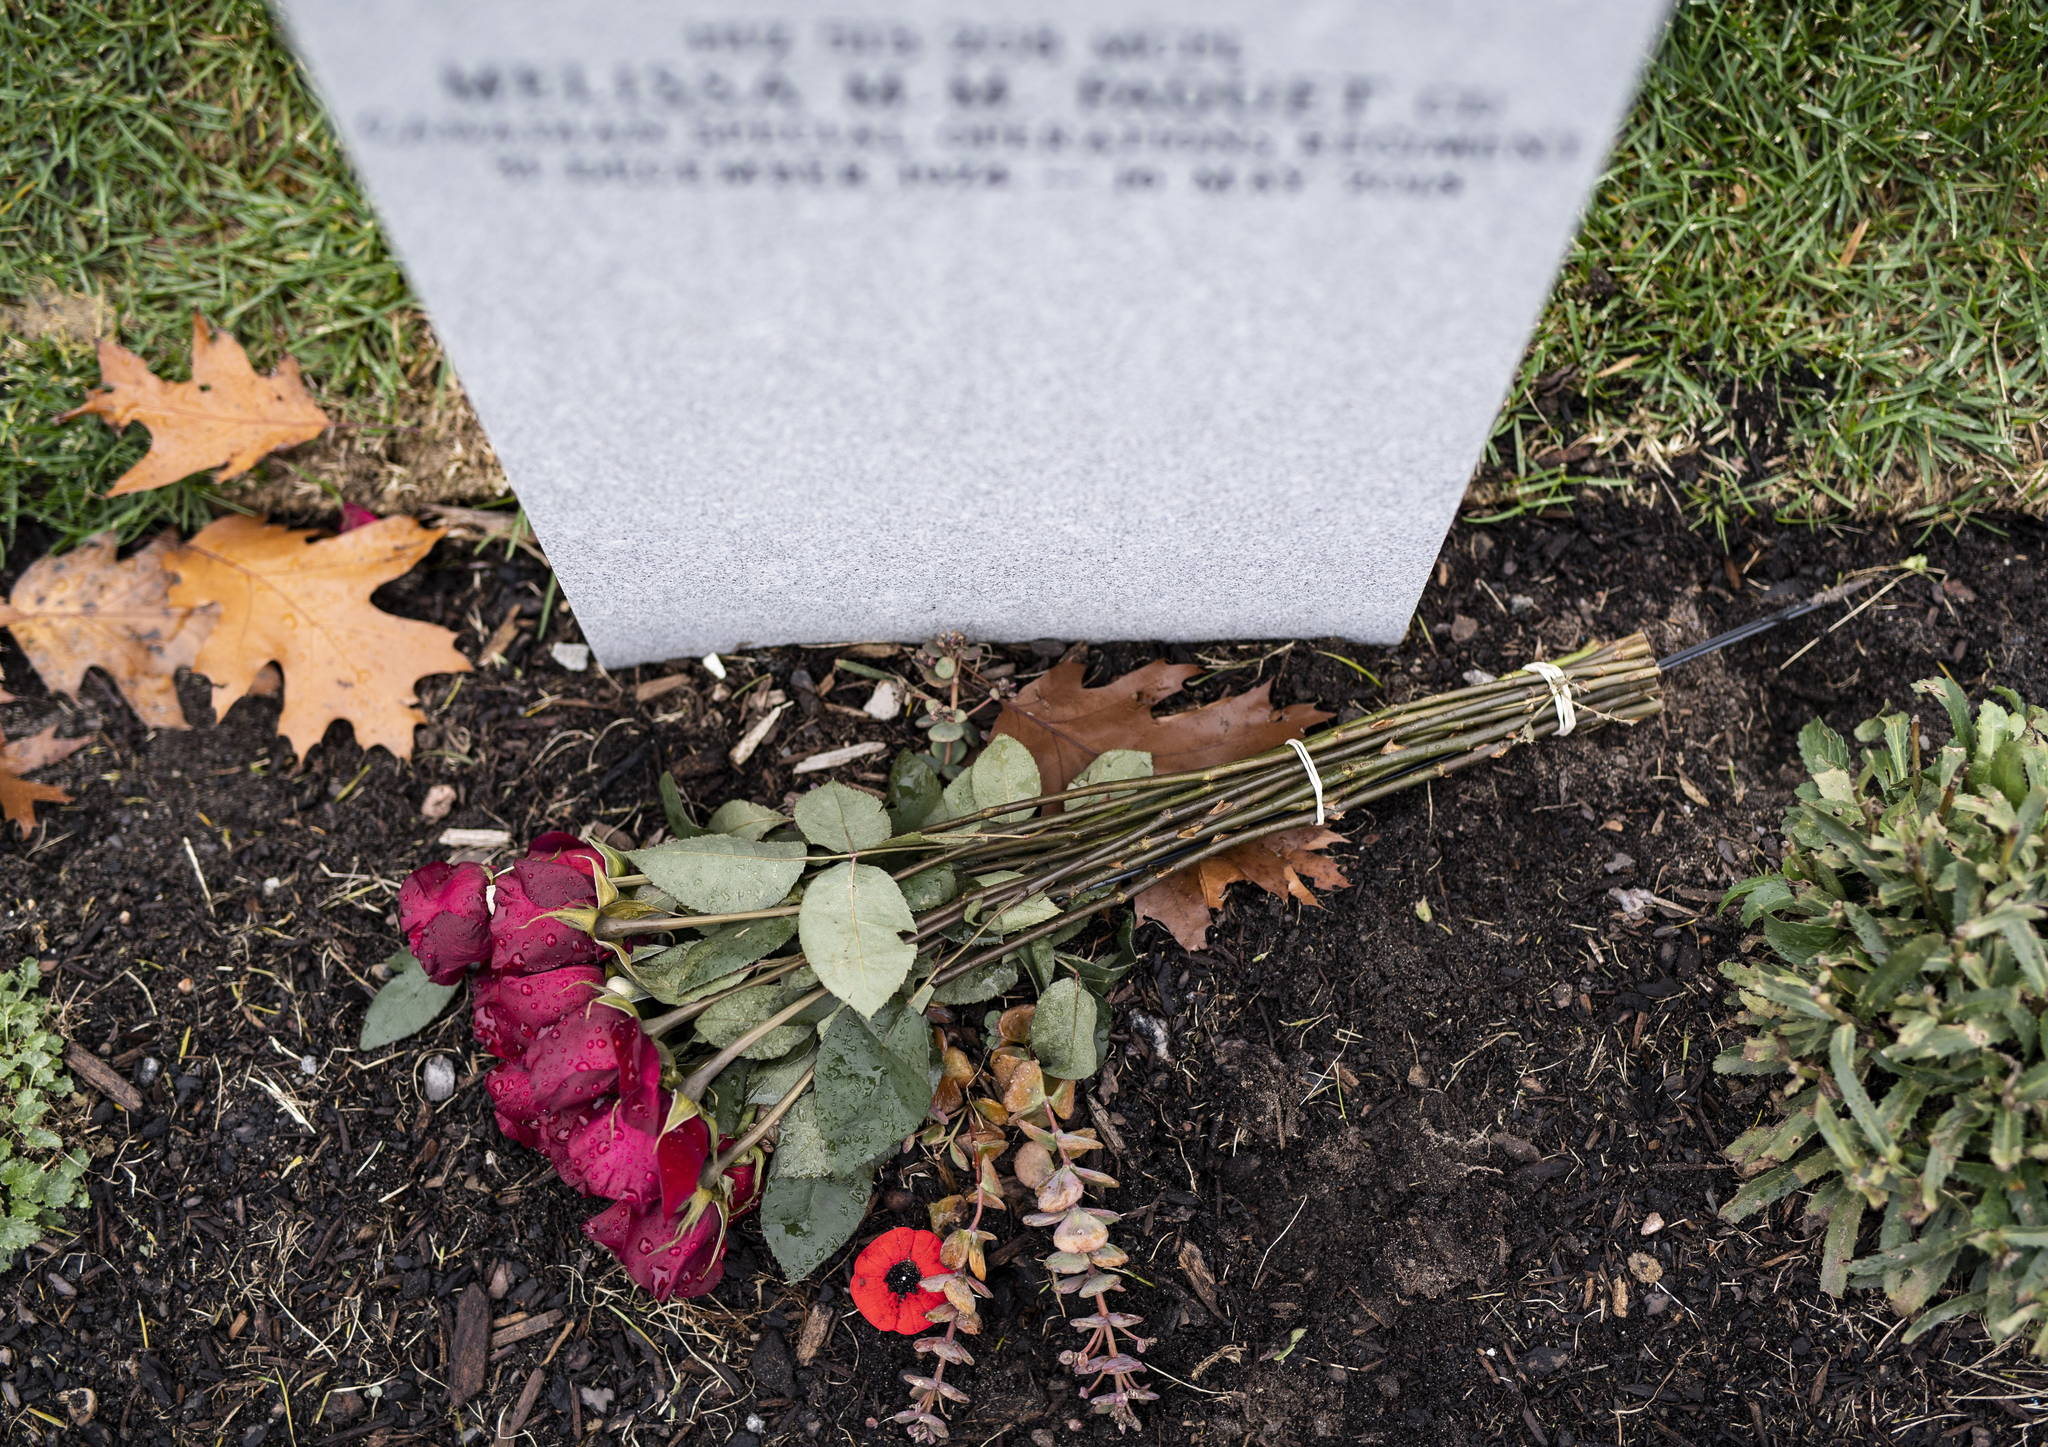 A bouquet of roses and a poppy lie at the foot of a grave at the National Military Cemetery at Beechwood Cemetery in Ottawa on the day before Remembrance Day, Sunday, Nov. 10, 2019. THE CANADIAN PRESS/Justin Tang